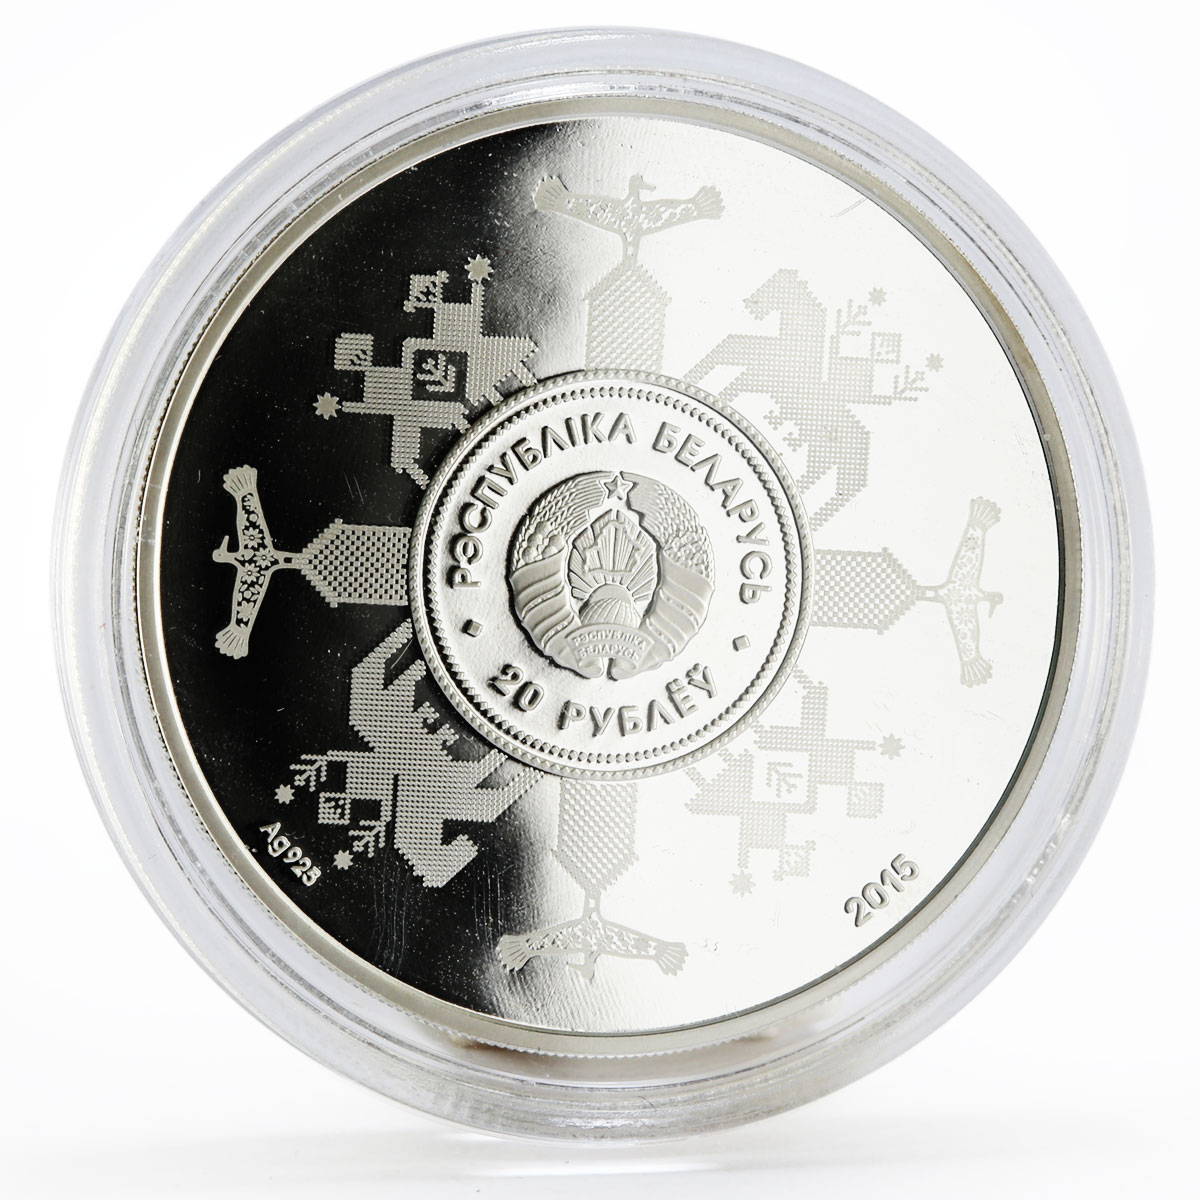 Belarus 20 rubles Eurasian Economic Union proof silver coin 2015